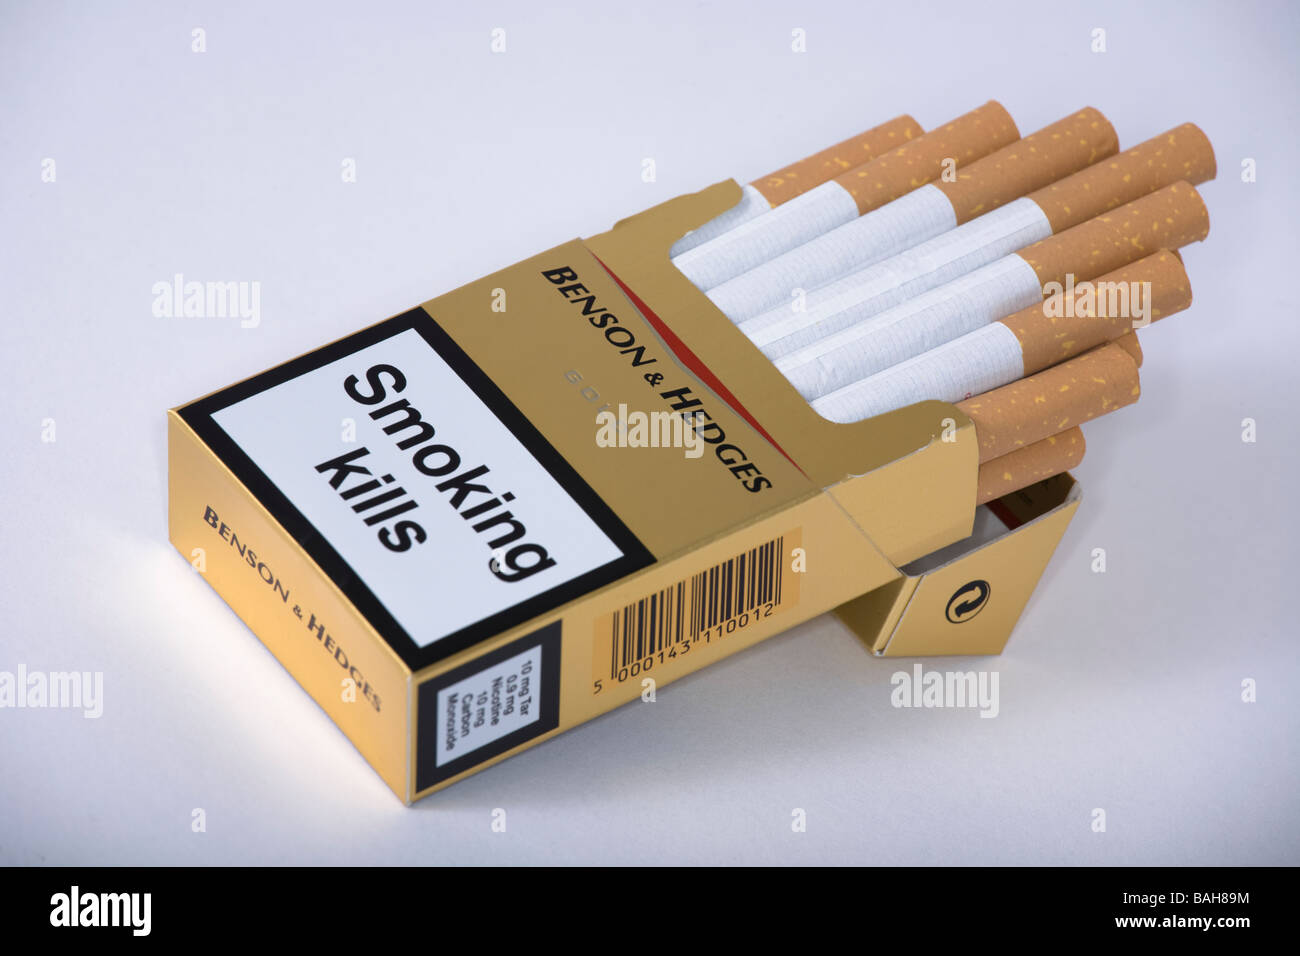 Where to buy cheapest cigarettes Kent in Sweden